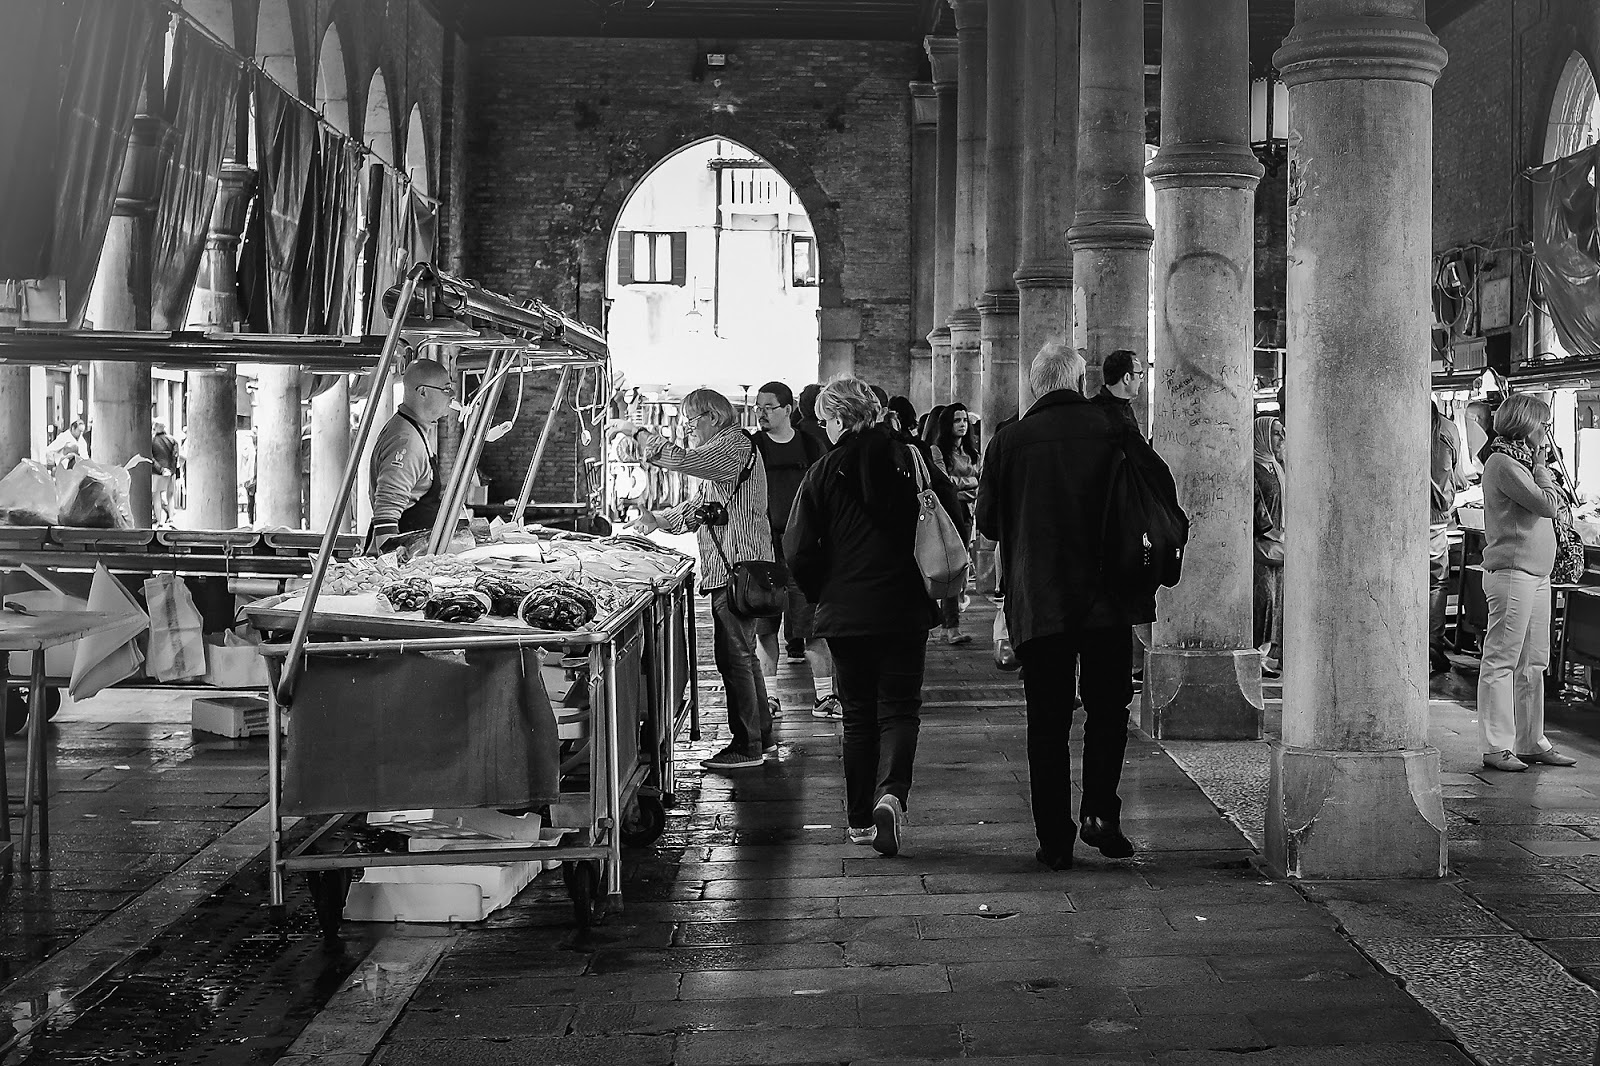 Fujifilm X-pro2 Image of Venice by Willie Kers